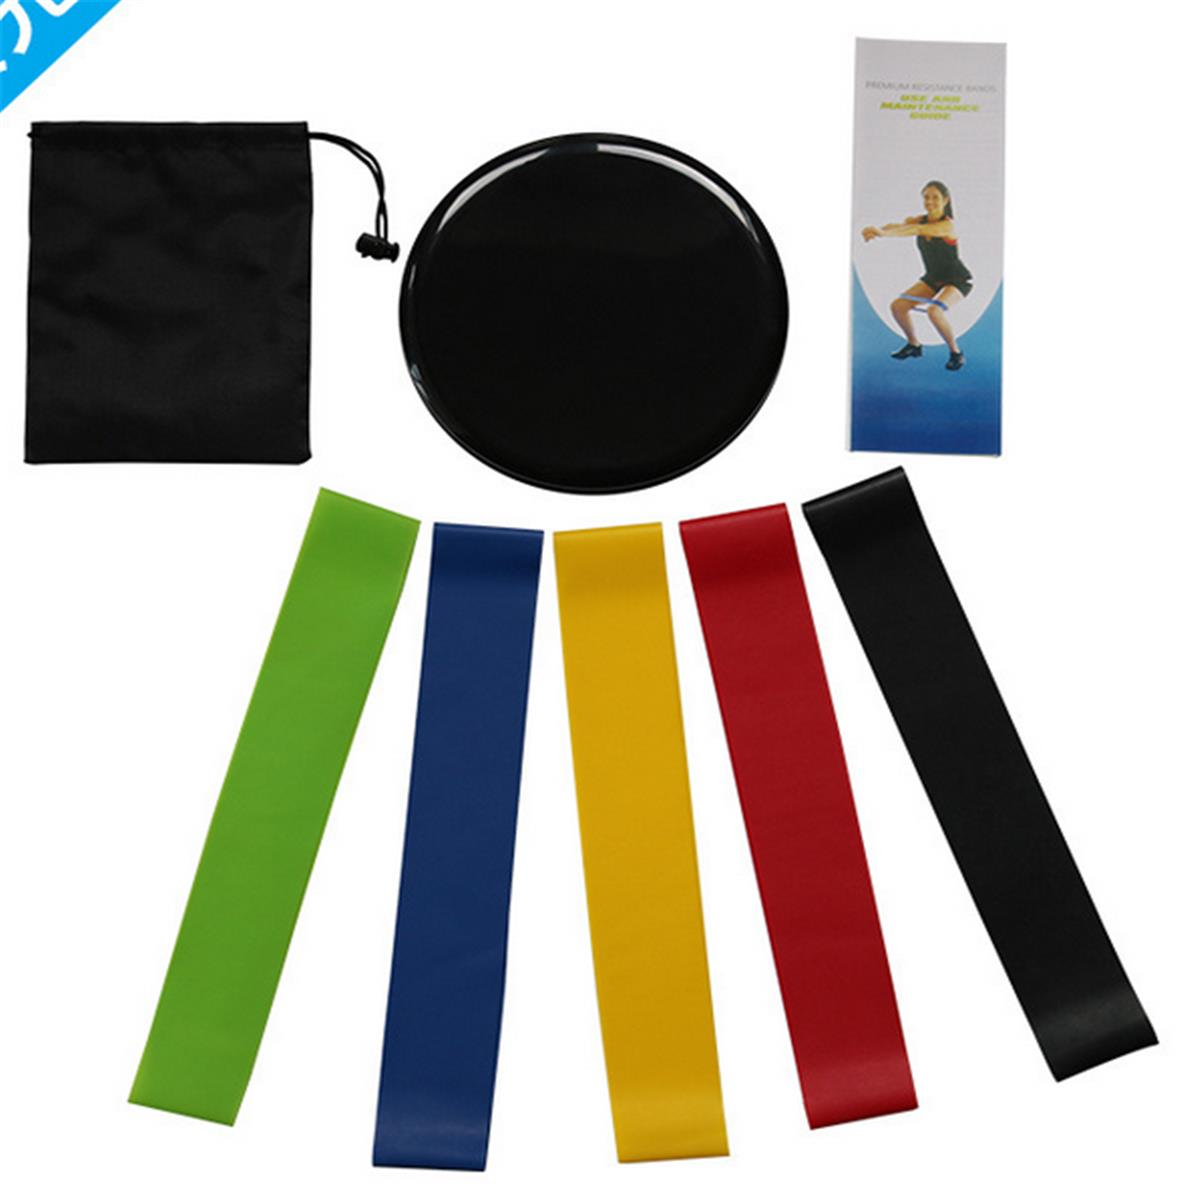 7 Pcs/ Set Fitness Equipment 2 Pcs Black Fitness Slide Plate 5 Pcs Different Strength Tension Ring